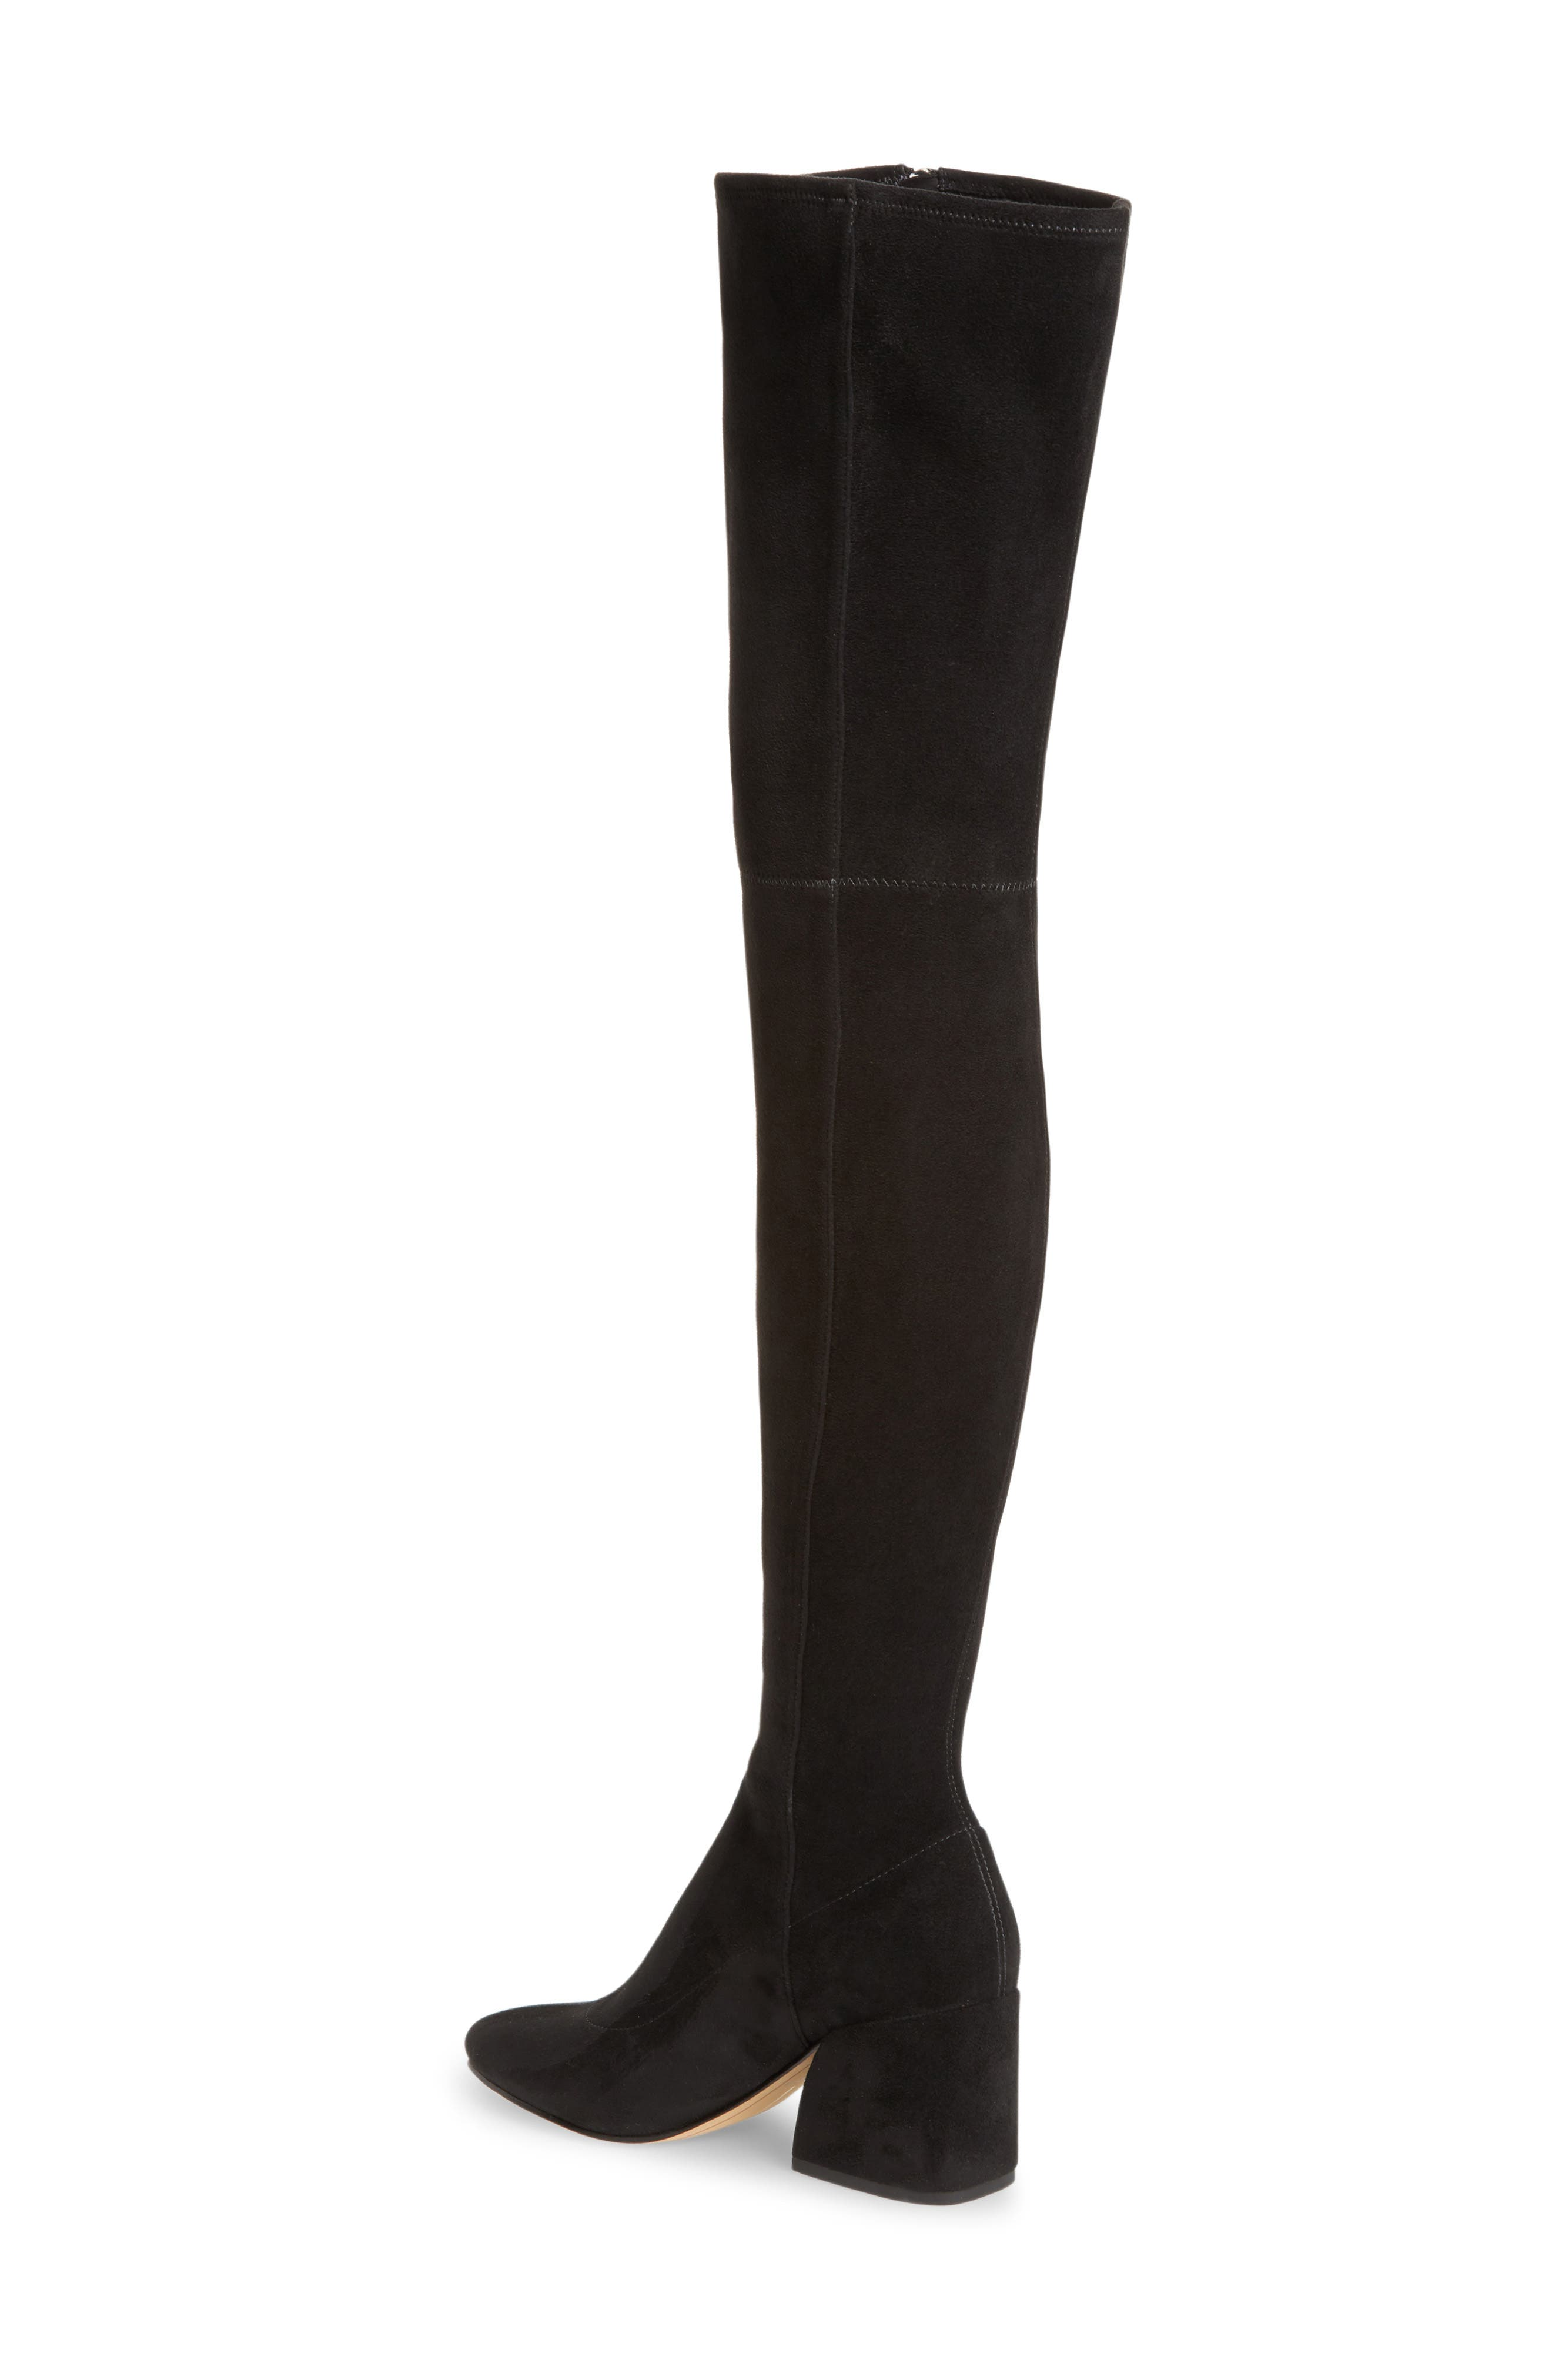 Vix Thigh High Boot,                             Alternate thumbnail 2, color,                             001